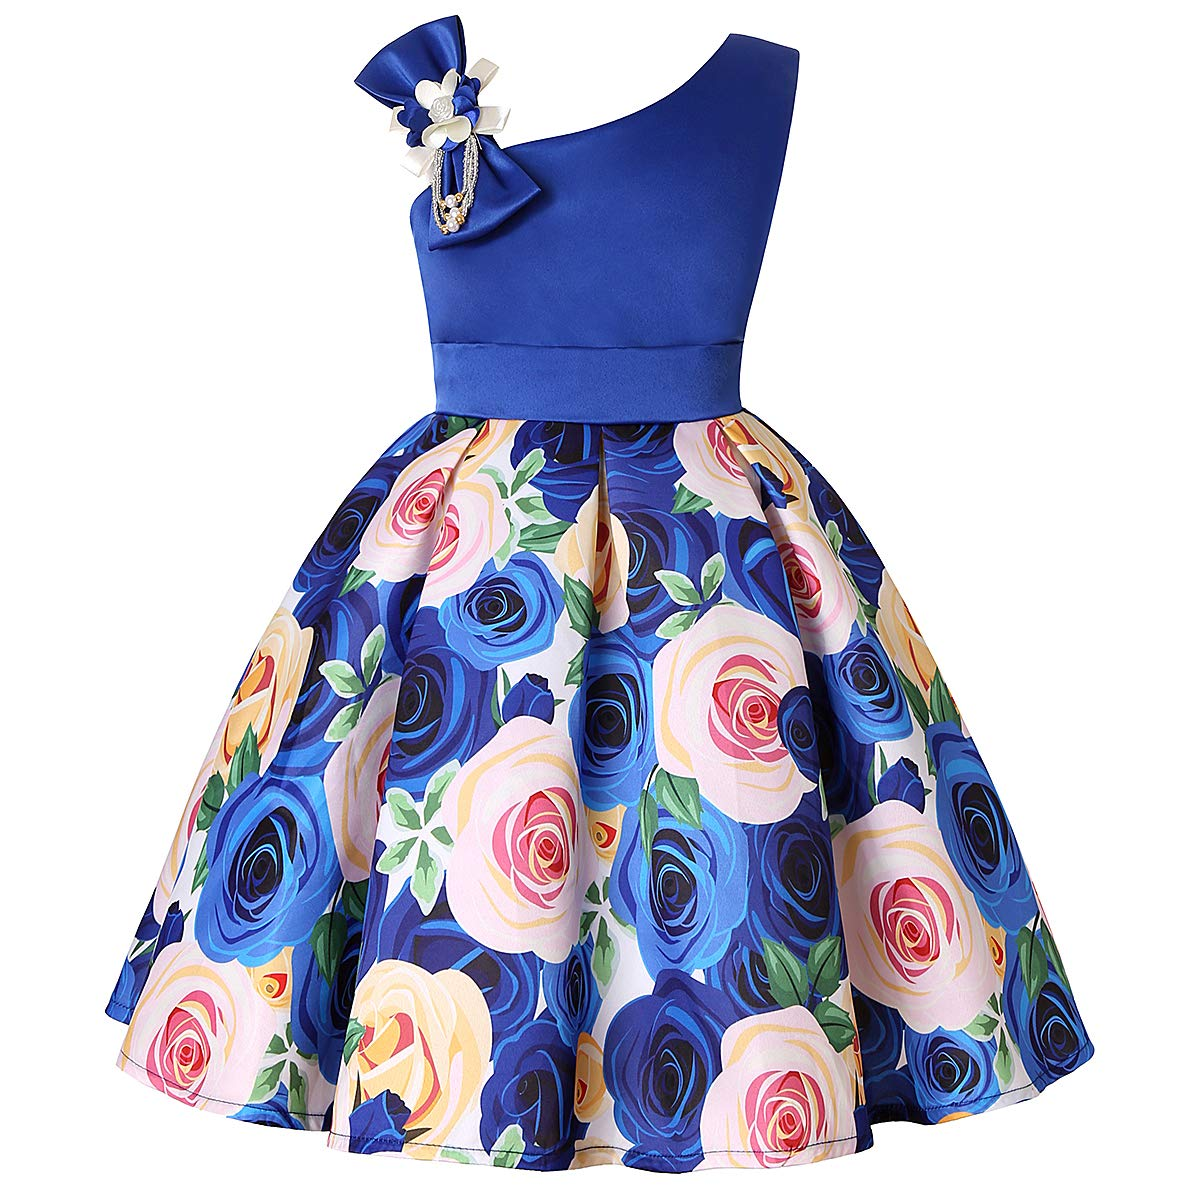 7cff053ec Galleon - LLQKJOH Dresses For Girls Special Occasion Clothes For Girls Blue  Party Dress Kids Wedding Gowns Little Girls Dresses Size 3 2-3 (Blue,3)